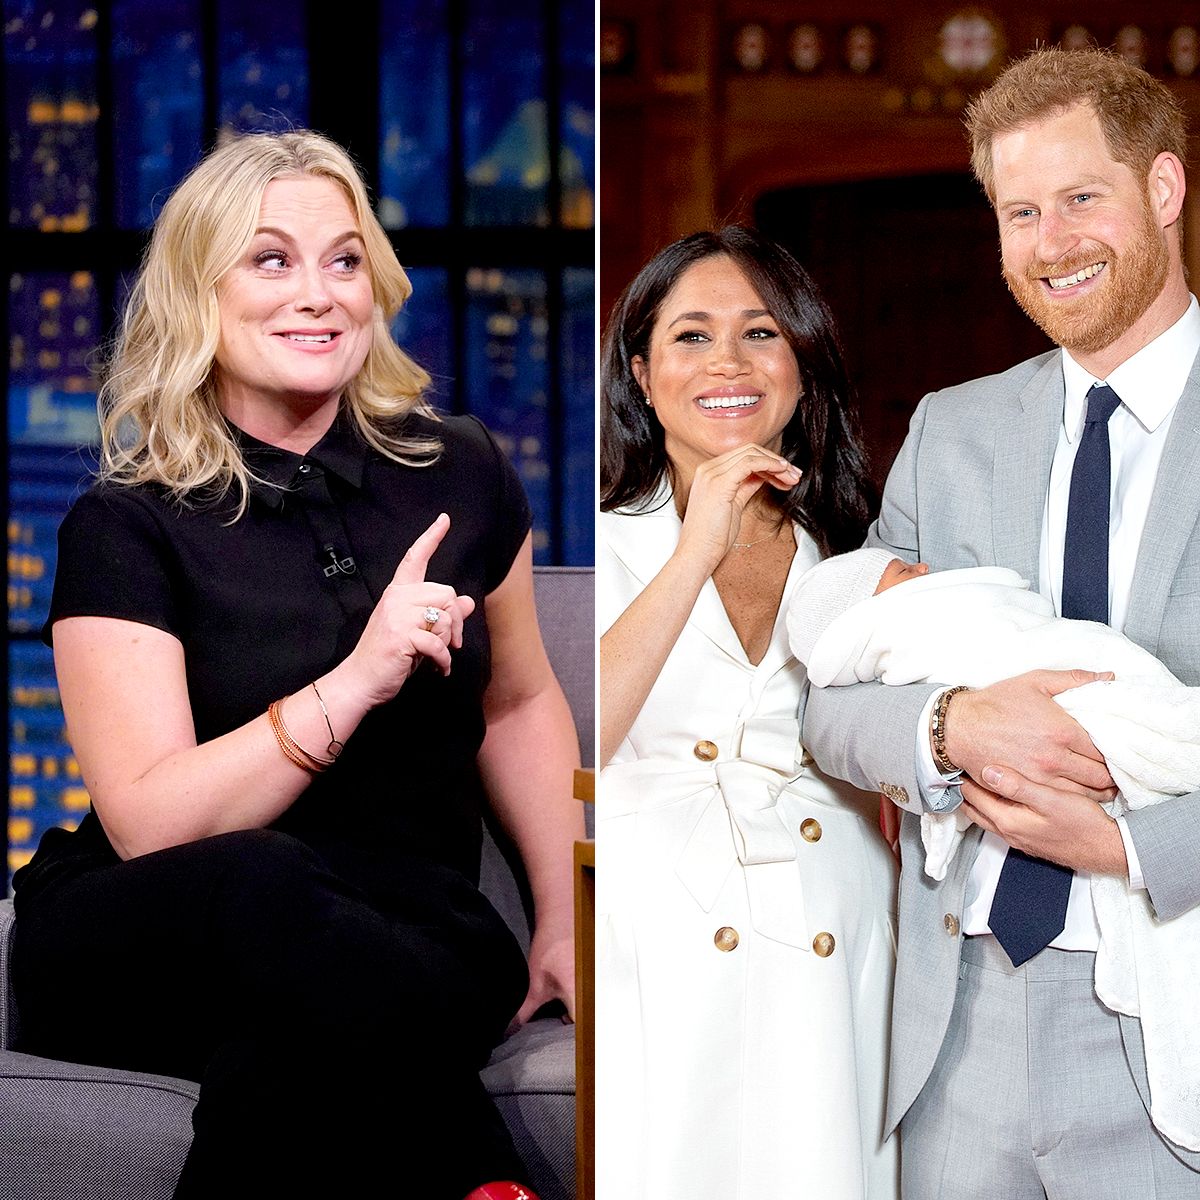 Amy-Poehler-Jokes-About-Prince-Harry,-Meghan-Stealing-Her-Baby-Name